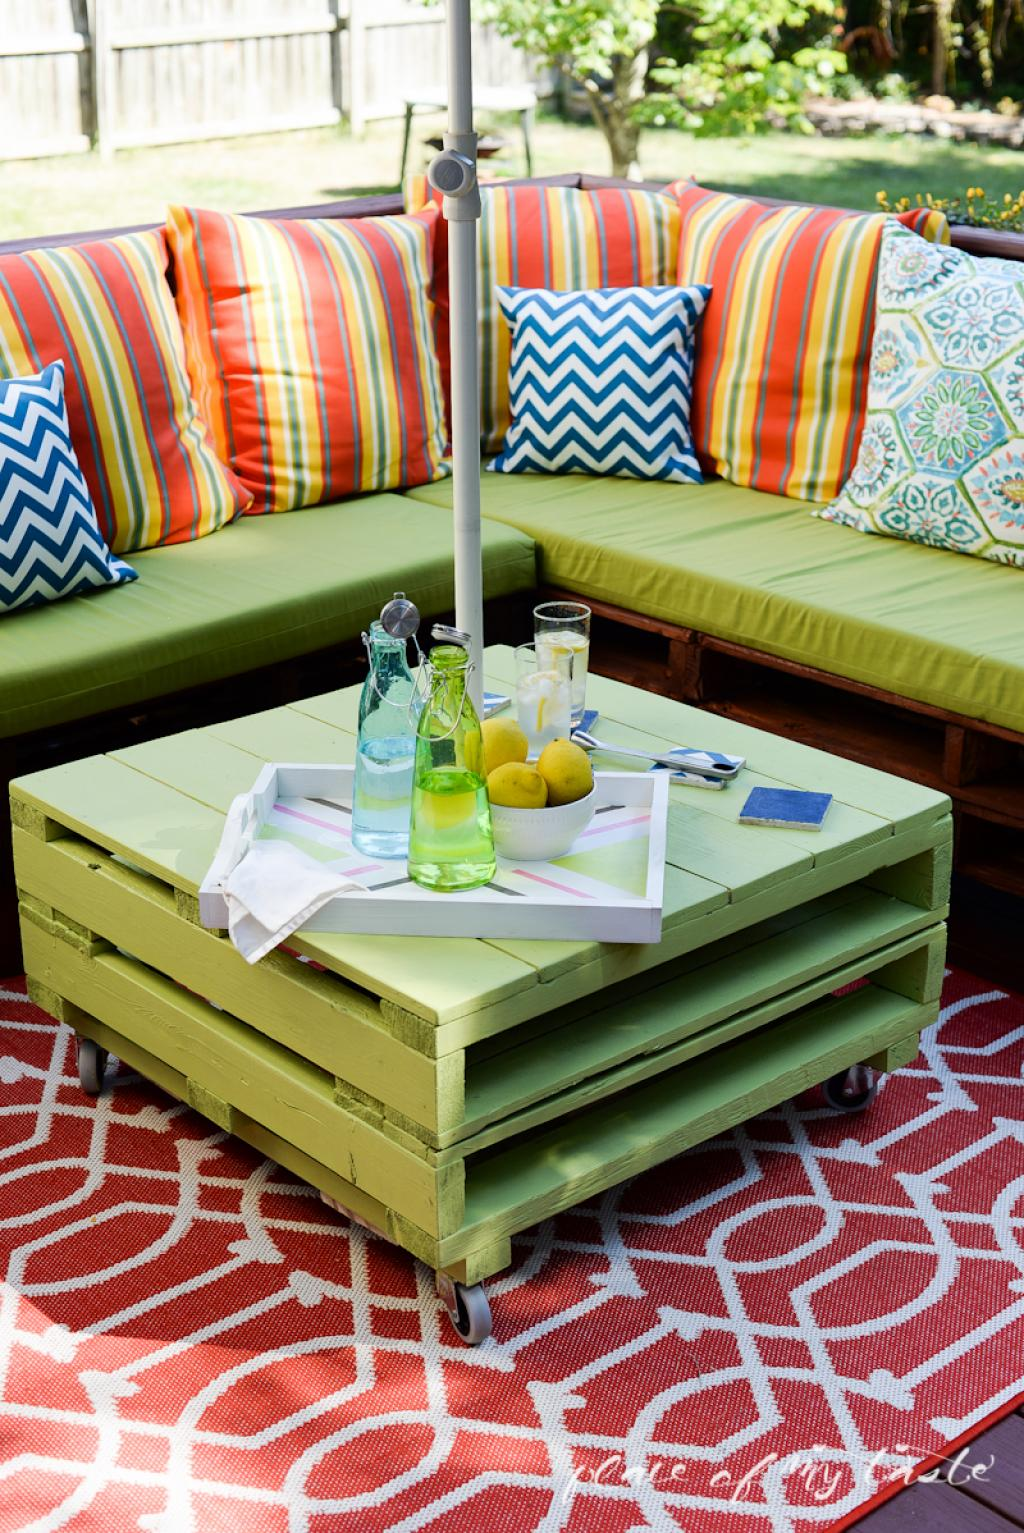 Wooden pallet craft projects - 3 Rolling Patio Table With Umbrella Shade